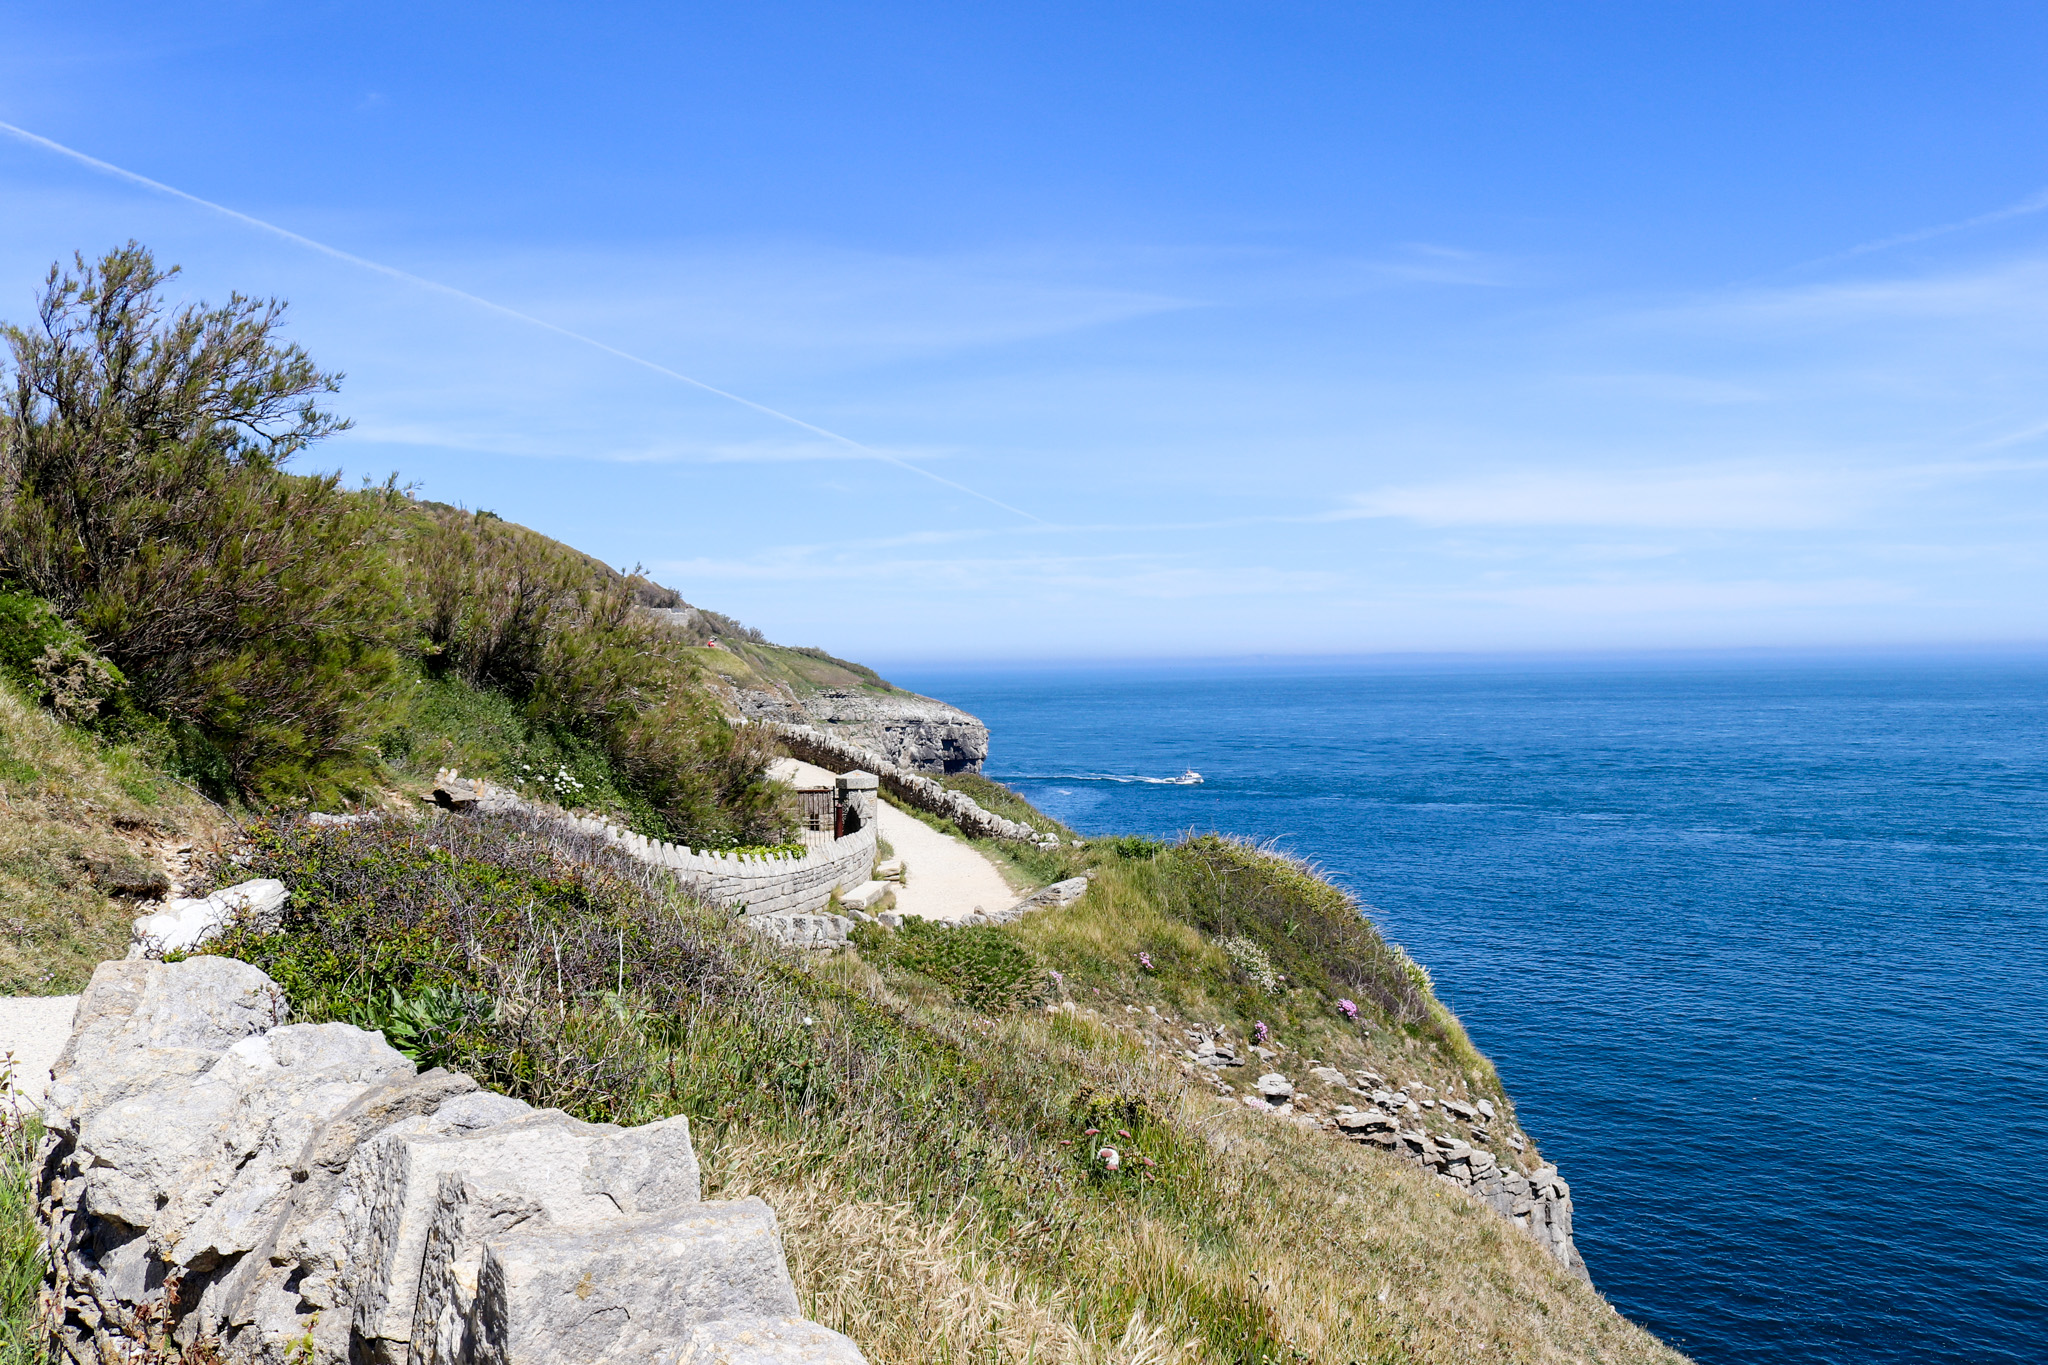 Coast path at Durlston Country Park in Swanage